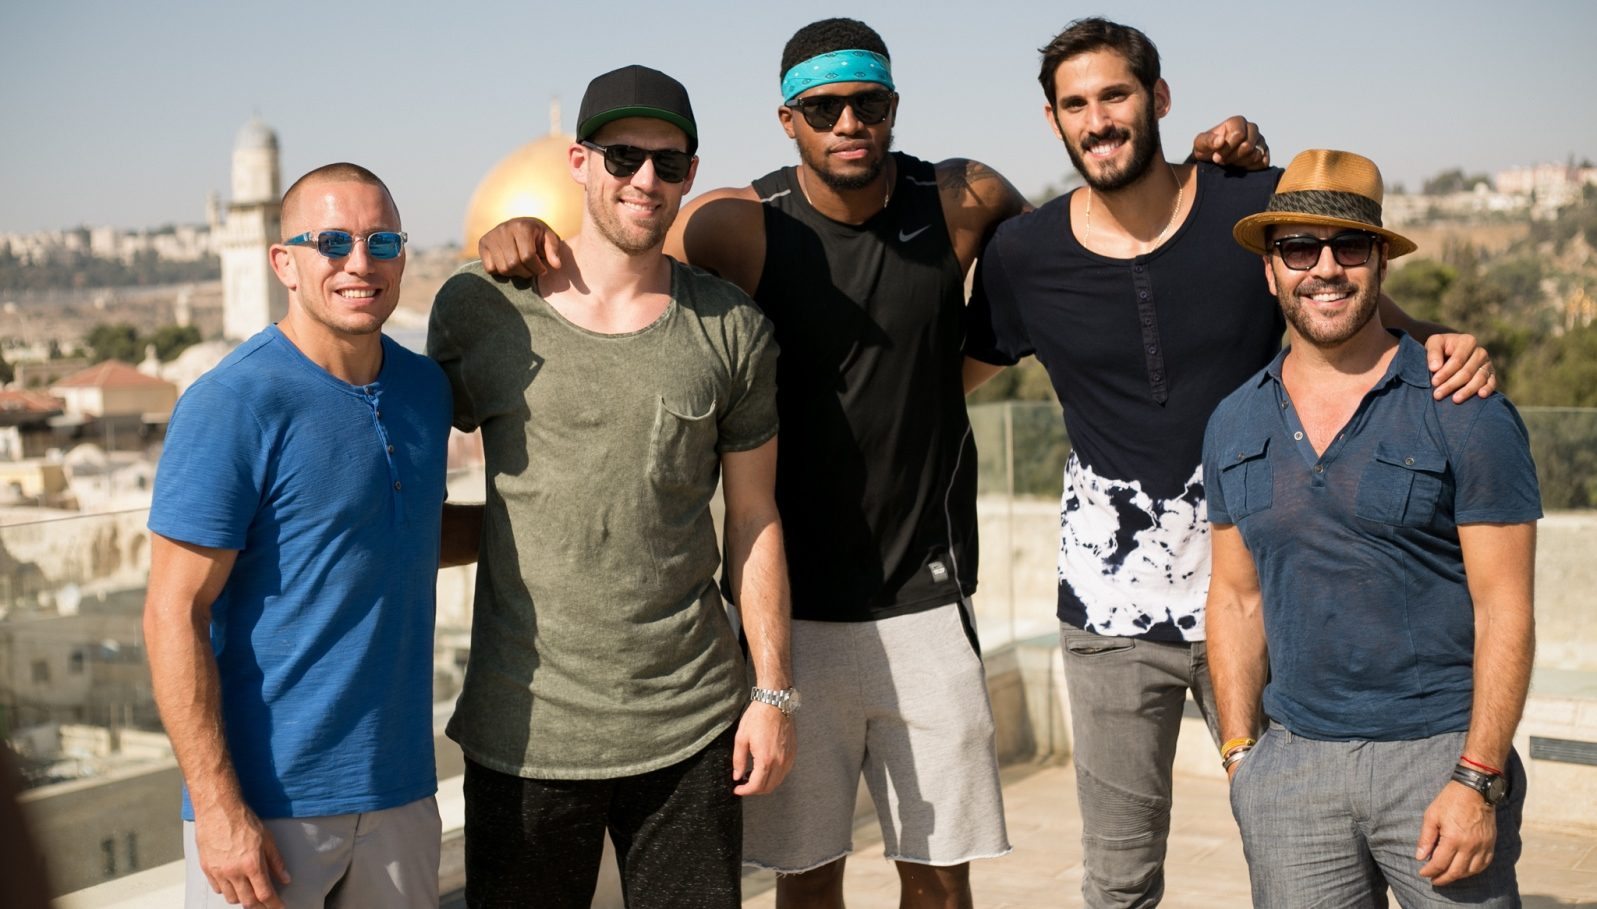 From right, Jeremy Piven, NBA players Omri Casspi, Rudy Gay, Beno Udrih, UFC fighter Georges St-Pierre. Photo by Shir Hassin